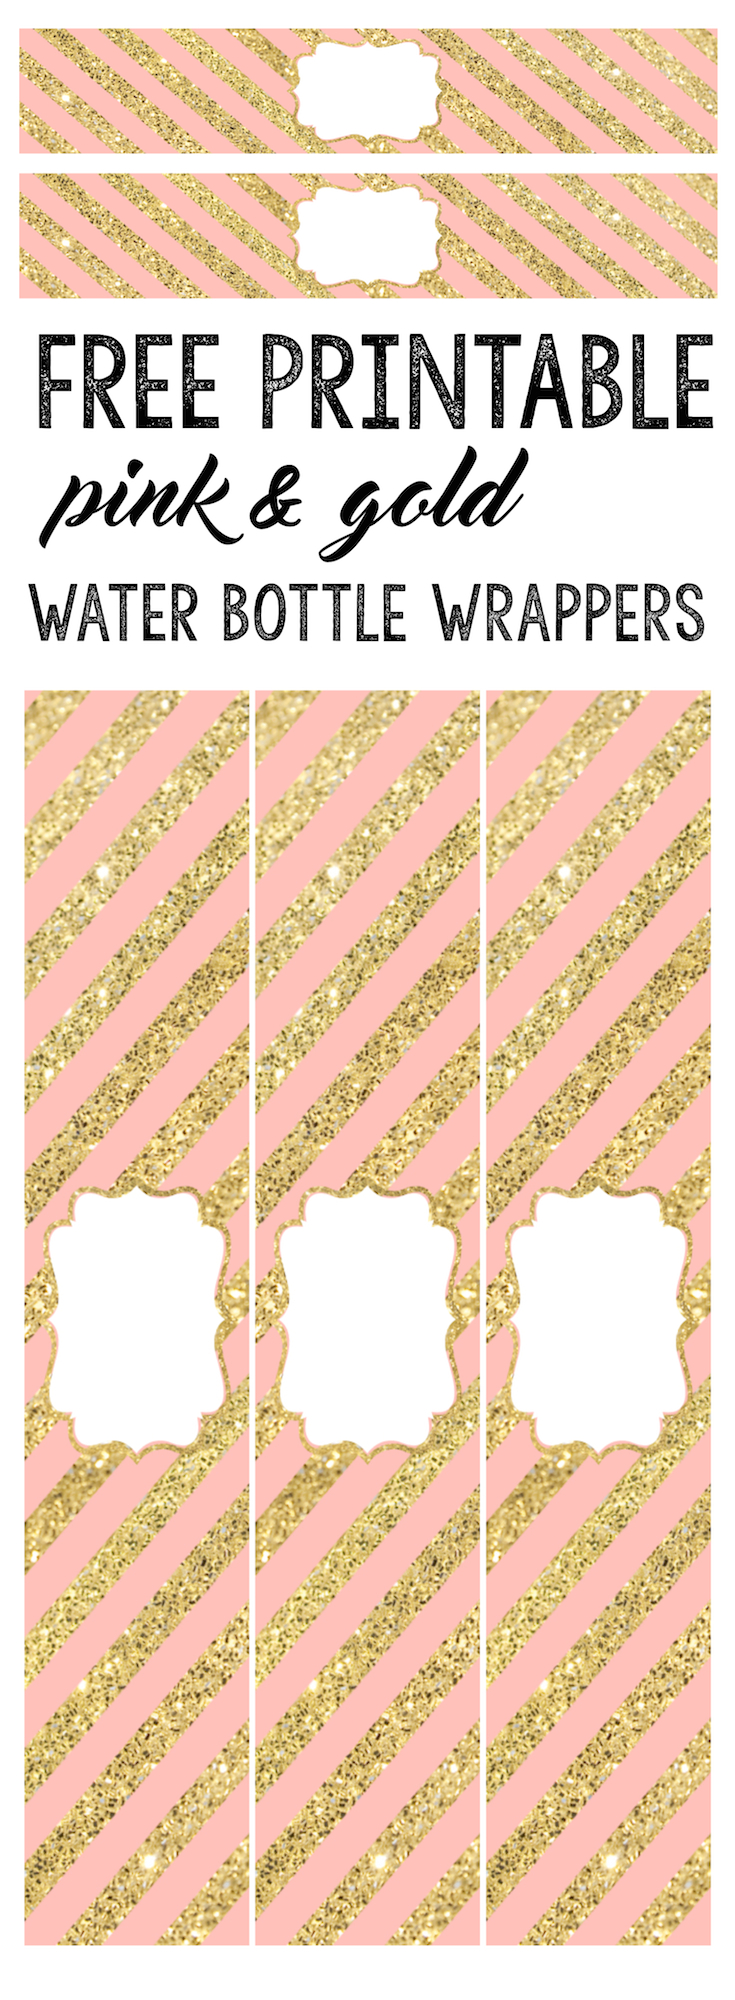 Pink and Gold Water Bottle Wrappers free printable. Print these adorable water bottle wrappers for your baby shower, bridal shower, birthday party, wedding reception or whatever event you dream up.